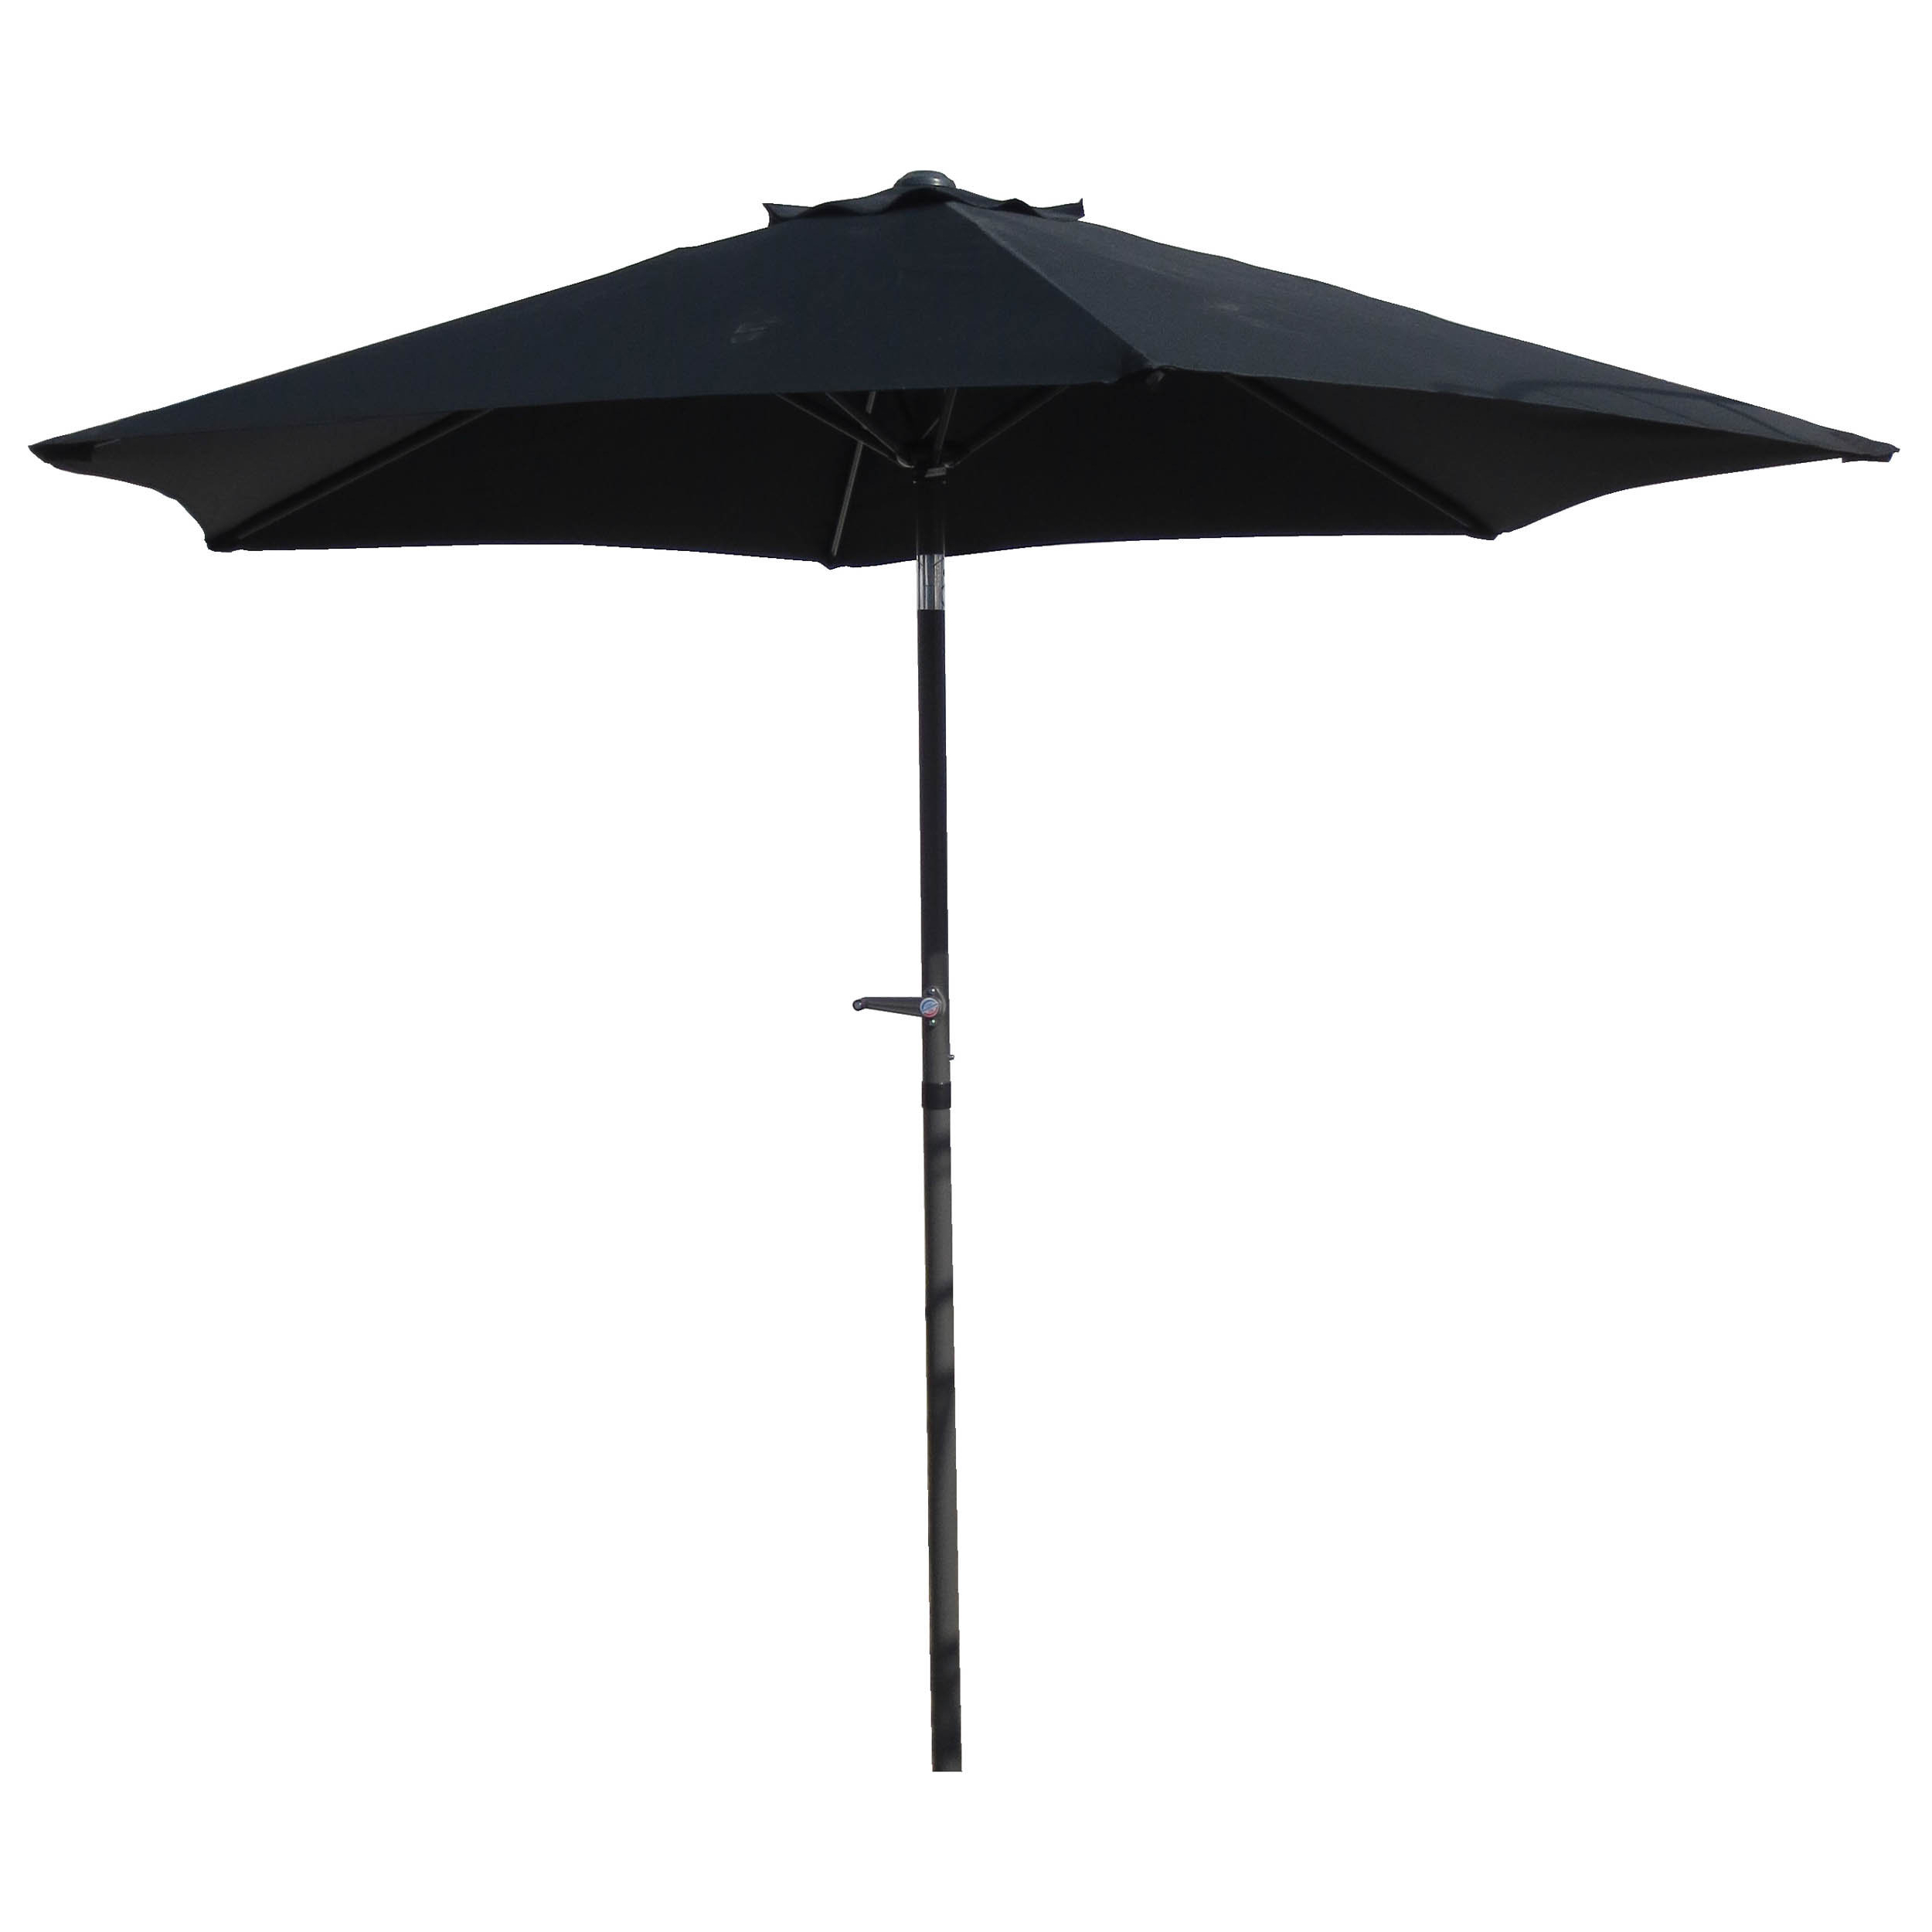 Recent Sheehan Half Market Umbrellas Pertaining To Brayden Studio Hyperion 8.5' Market Umbrella (Gallery 17 of 20)